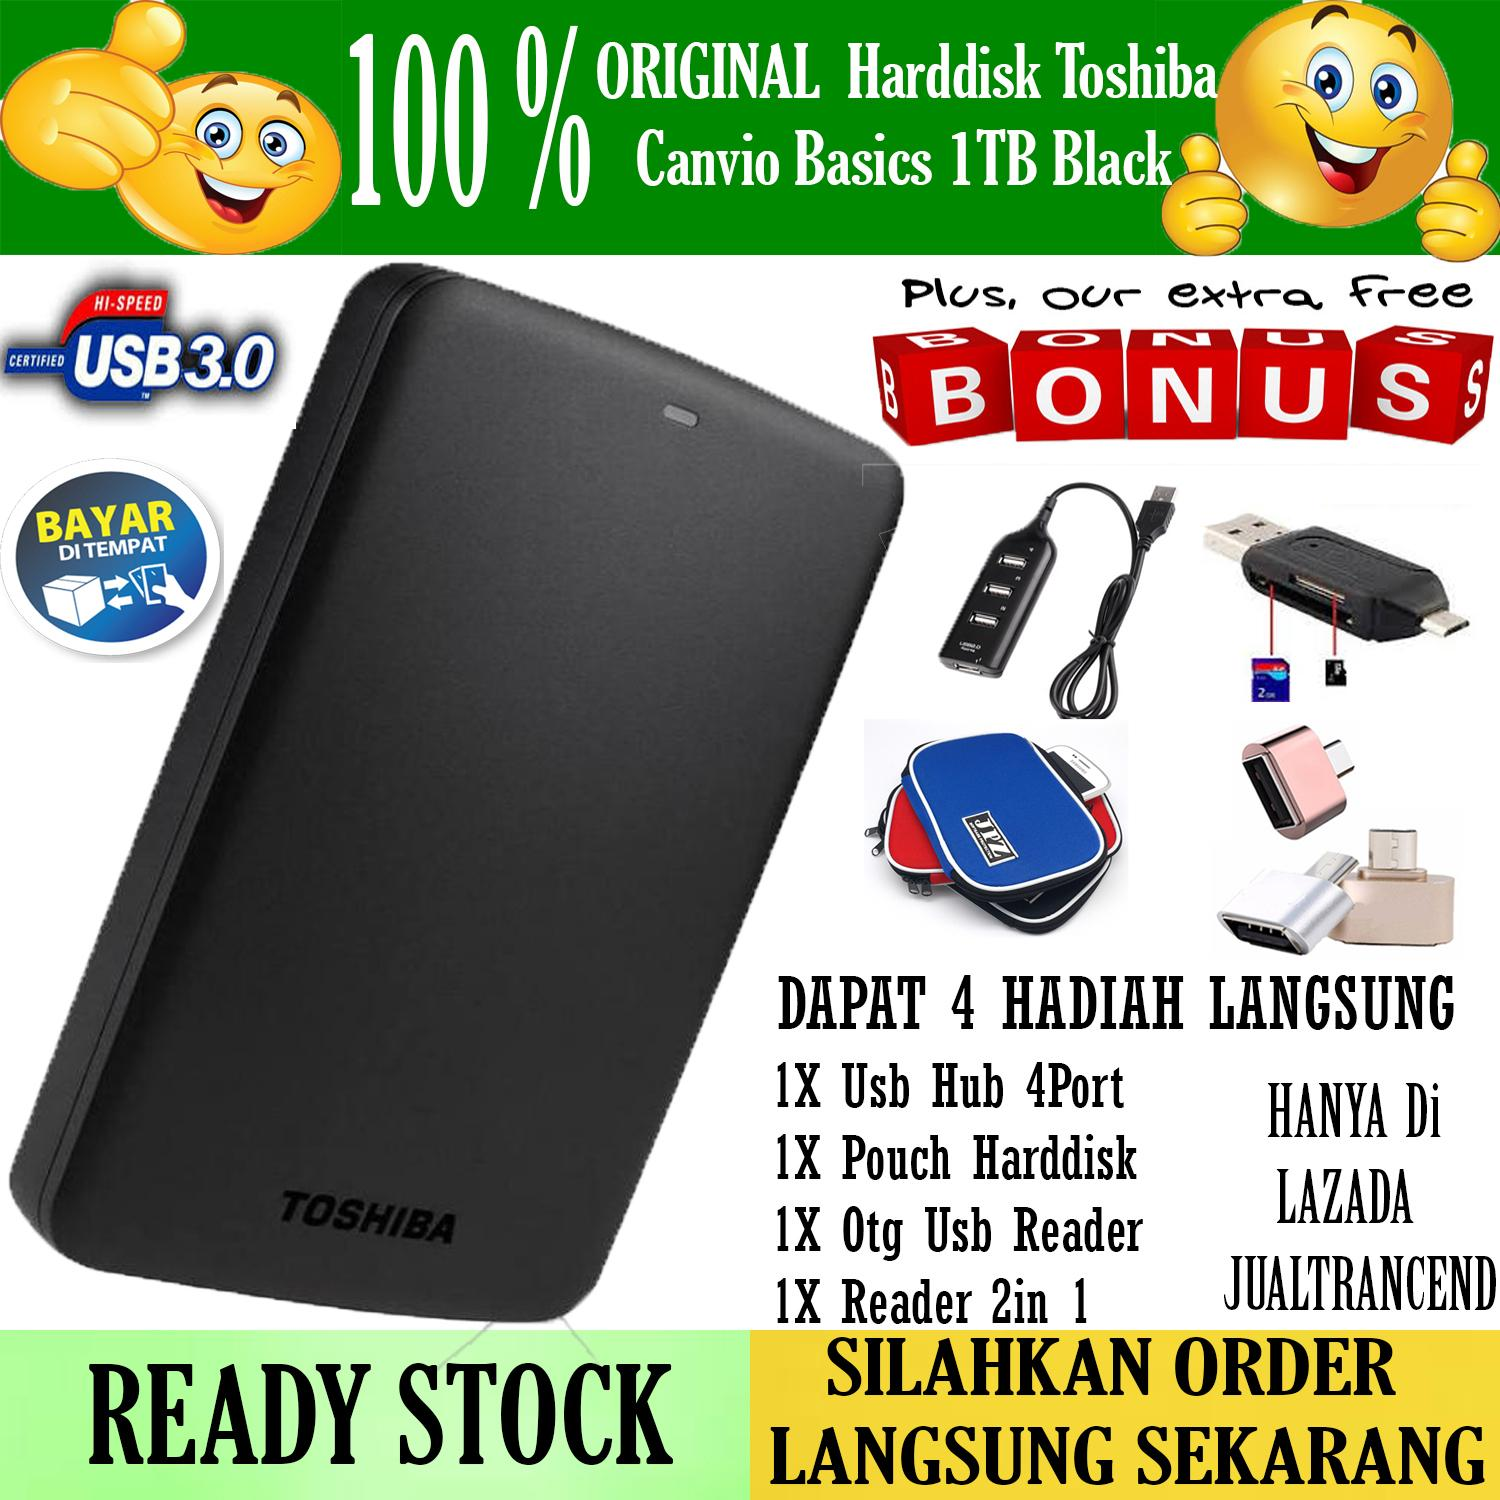 Promo Toshiba Canvio Basic 1TB - HDD / HD / Hardisk Eksternal - Hitam + Gratis Pouch Hdd + Otg Mini Reader + Usb Hub 4 Port + Reader 2in 1